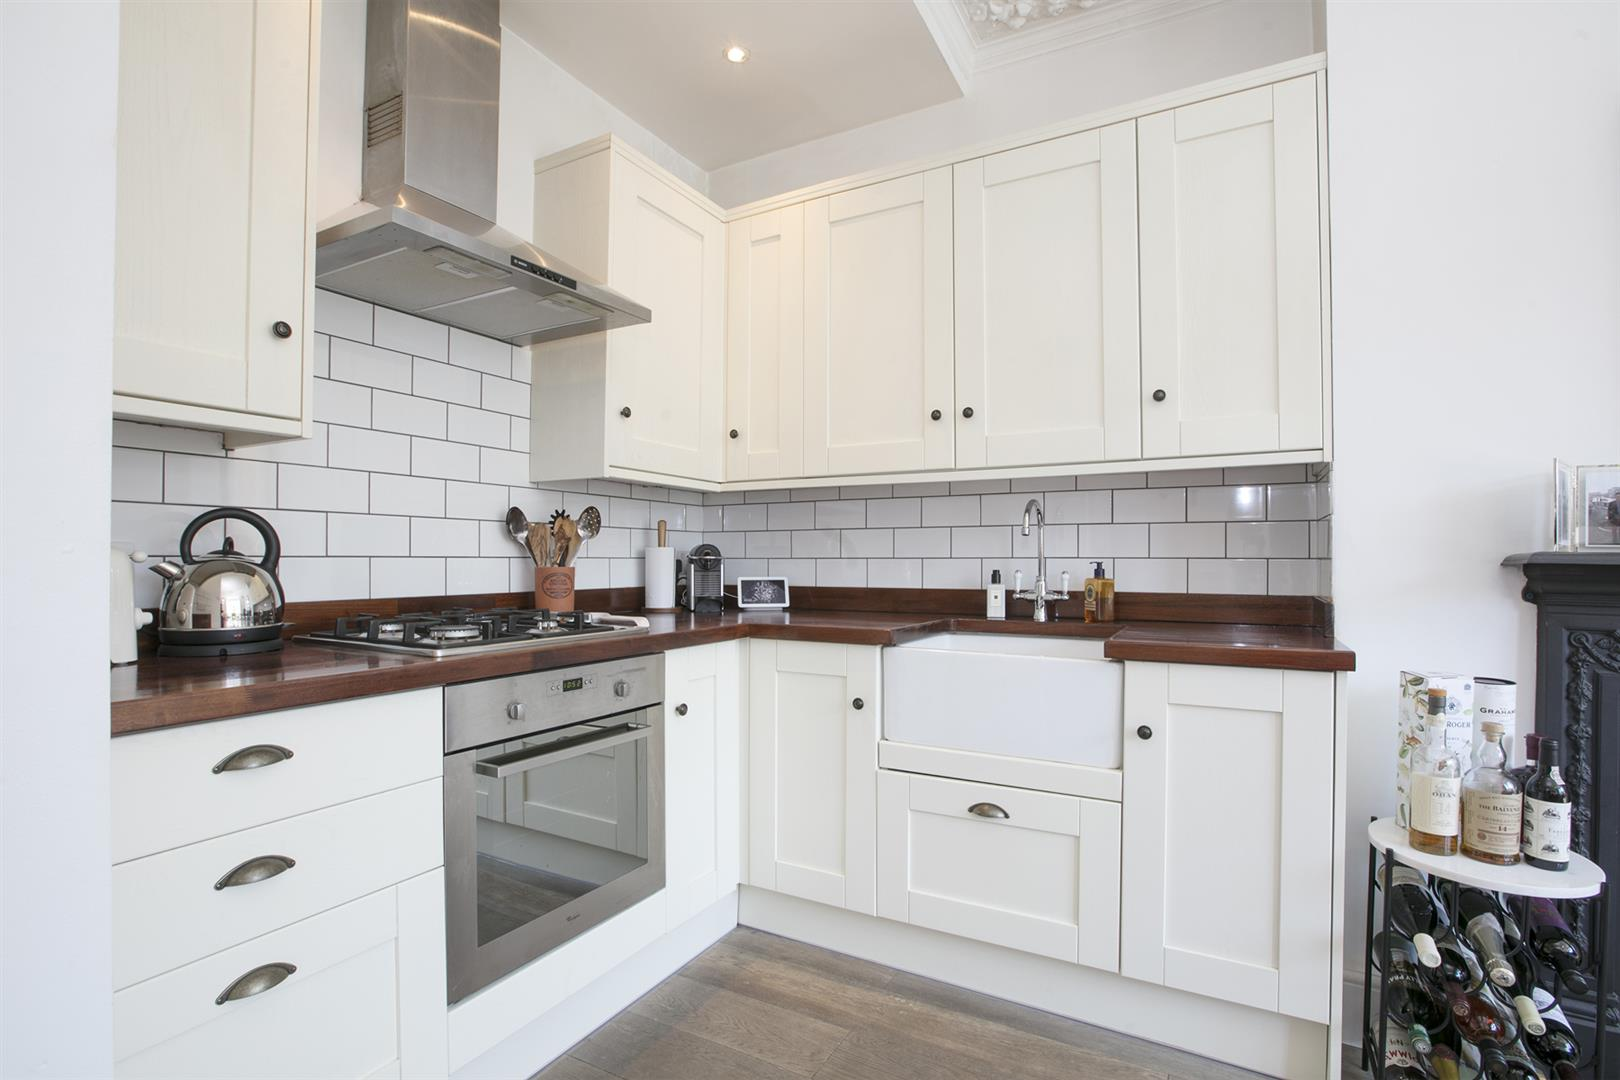 Flat - Conversion Sale Agreed in Waller Road, New Cross, SE14 629 view4